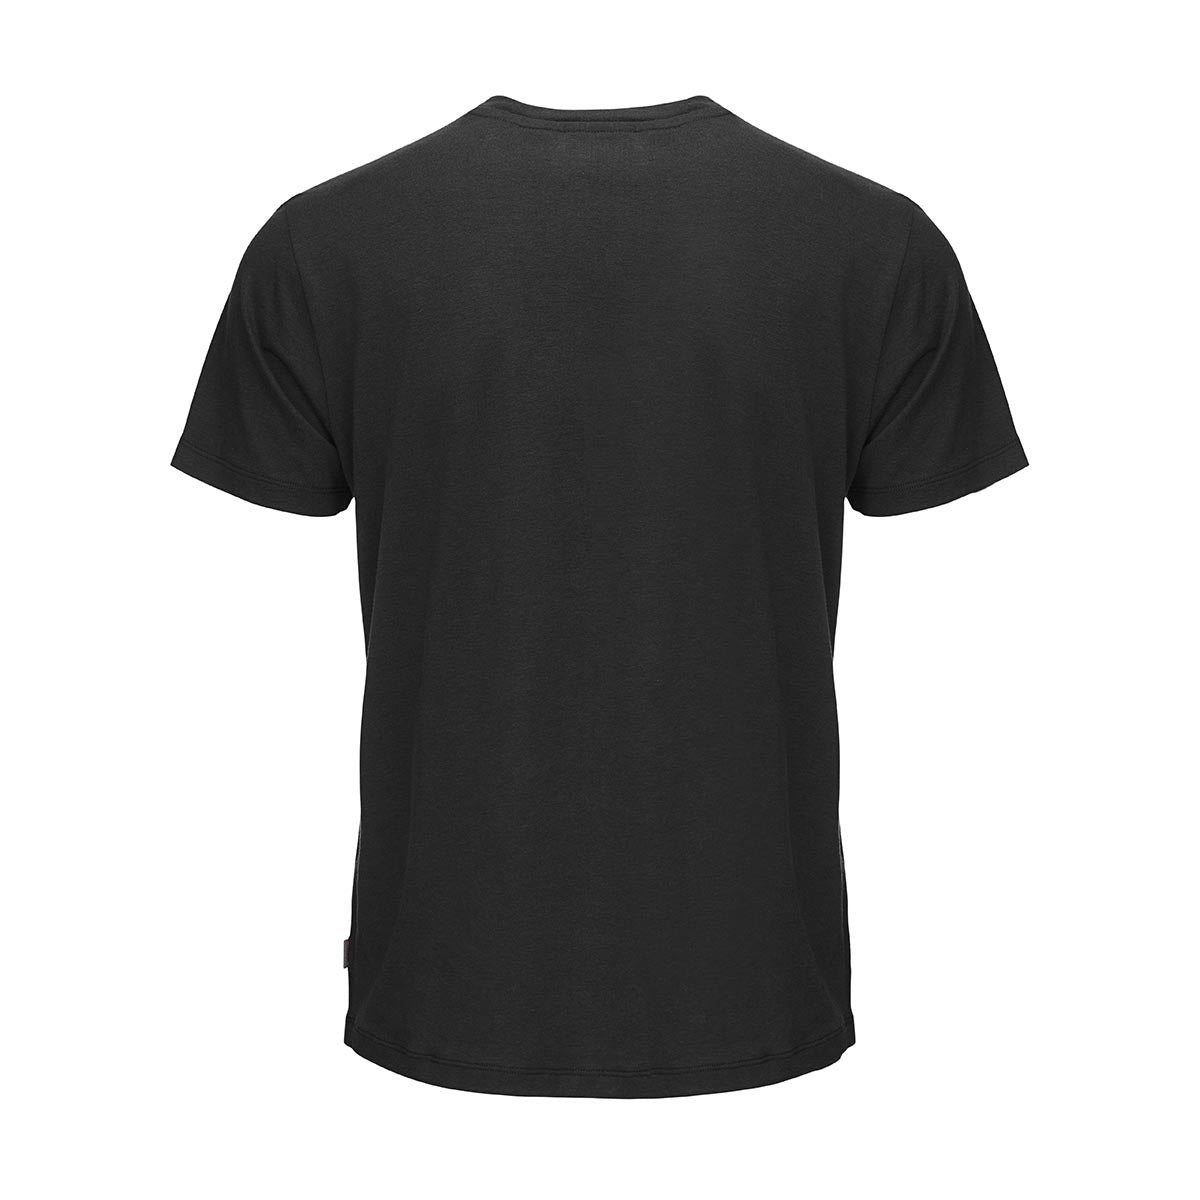 Breeze Ervik T-shirt - background::white,variant::Black